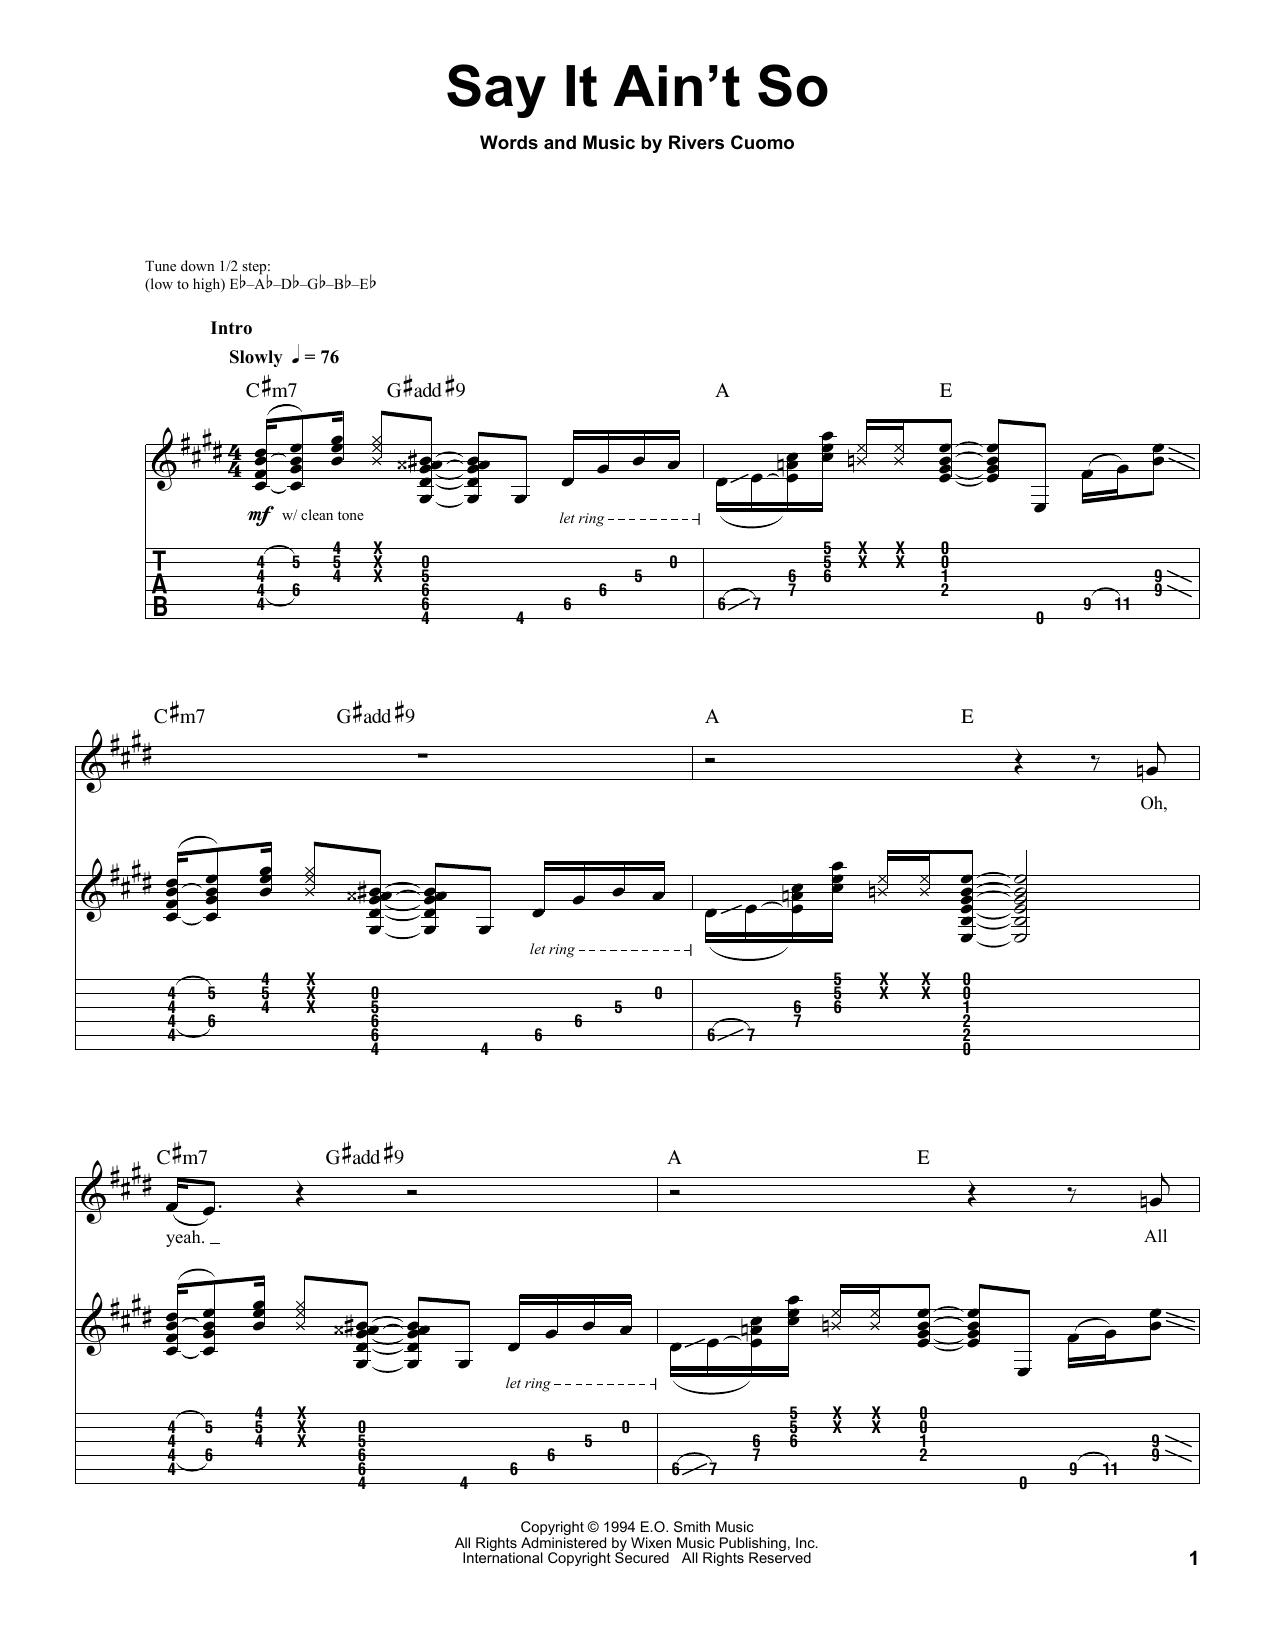 Weezer Say It Ain't So sheet music notes and chords. Download Printable PDF.